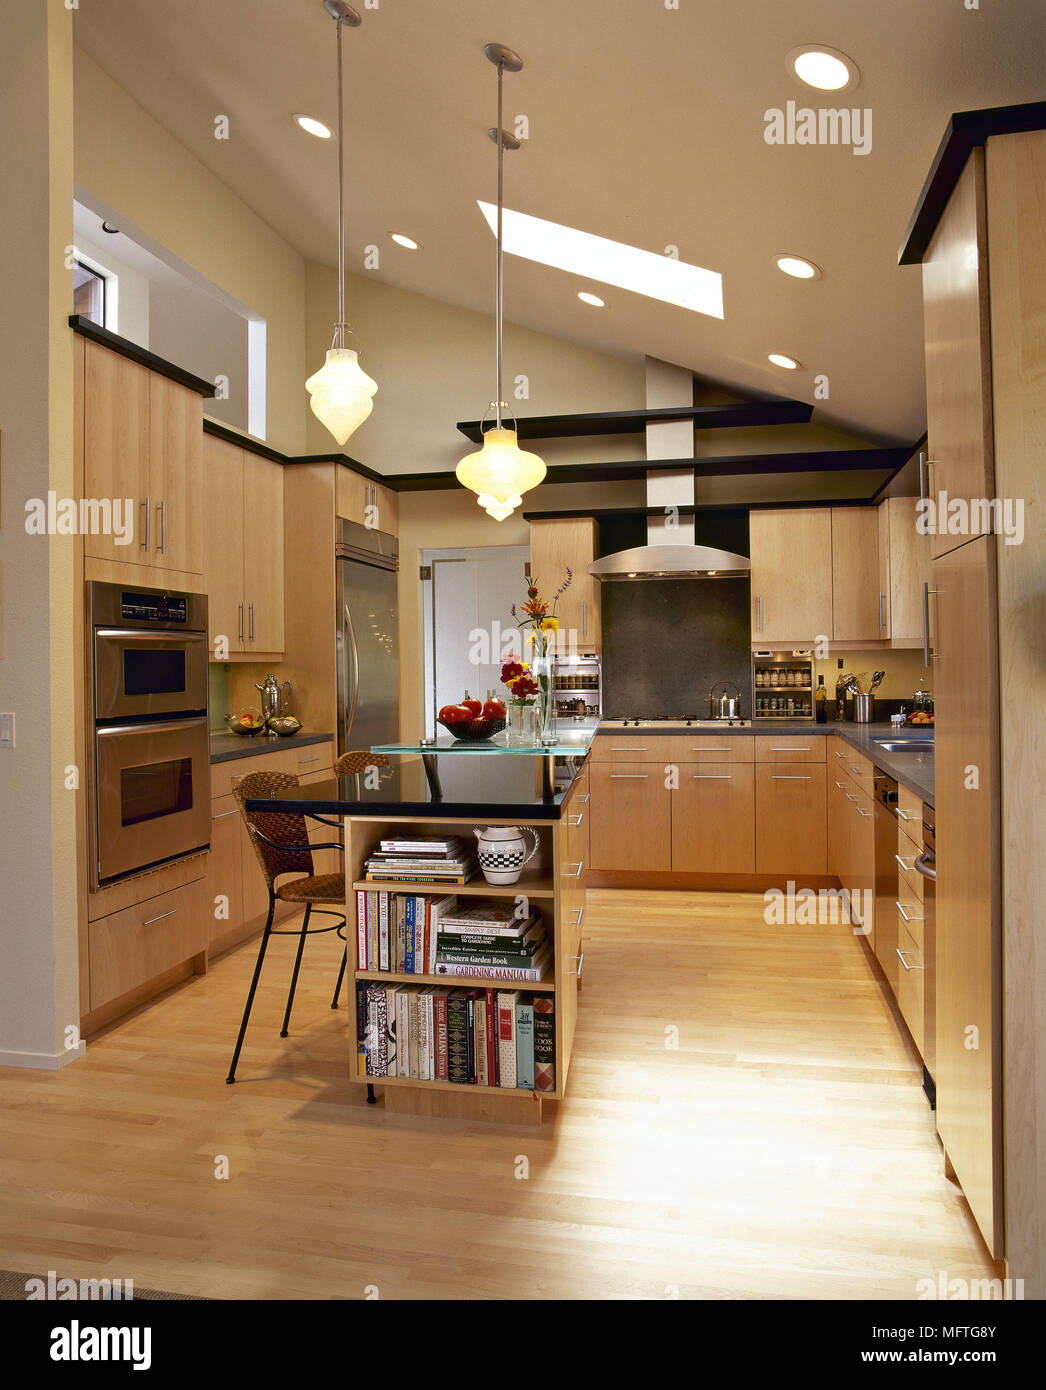 Cuisine Moderne Ilot Central modern kitchen with wood units and central island with